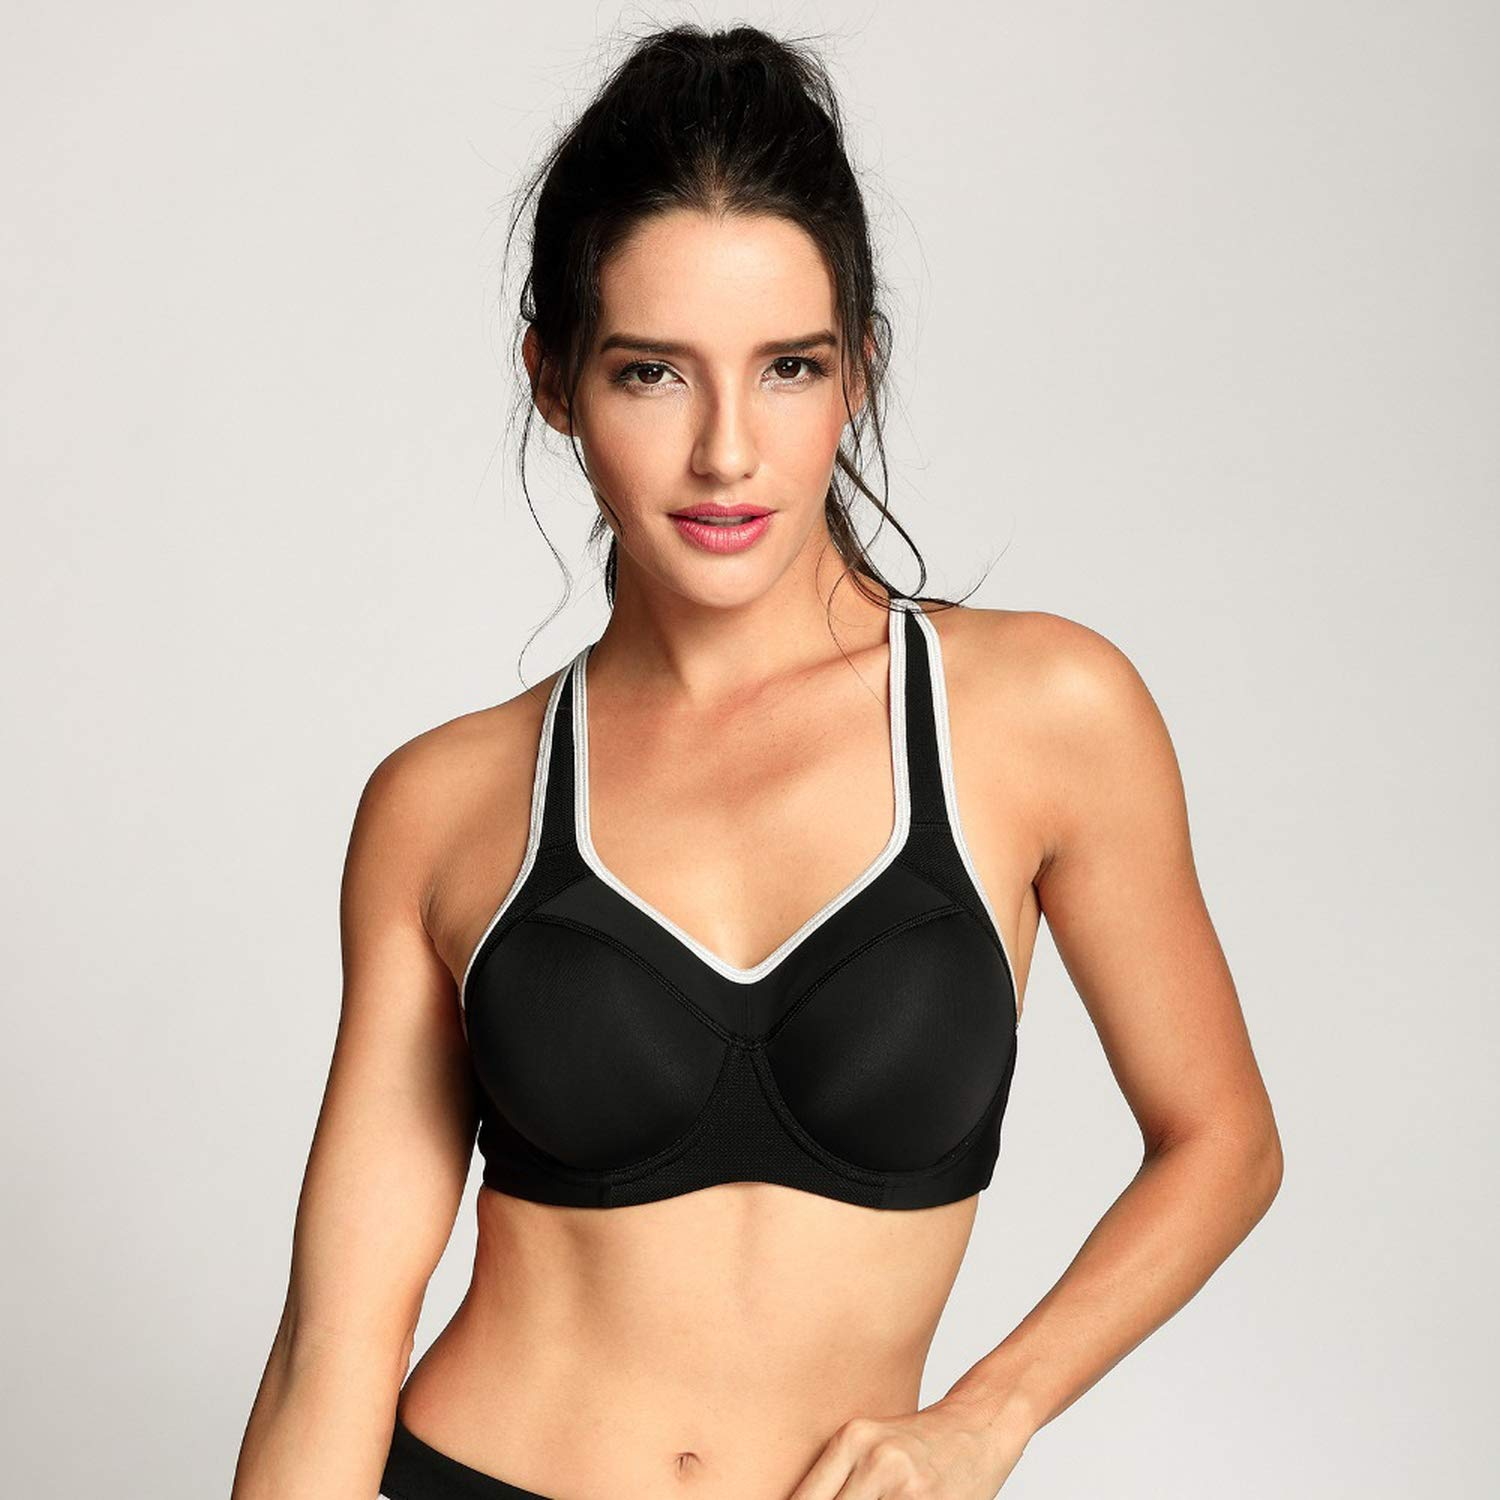 Henraly Womens Full Support Racerback Lightly Lined Underwire Sports Bra,Black01,C,40